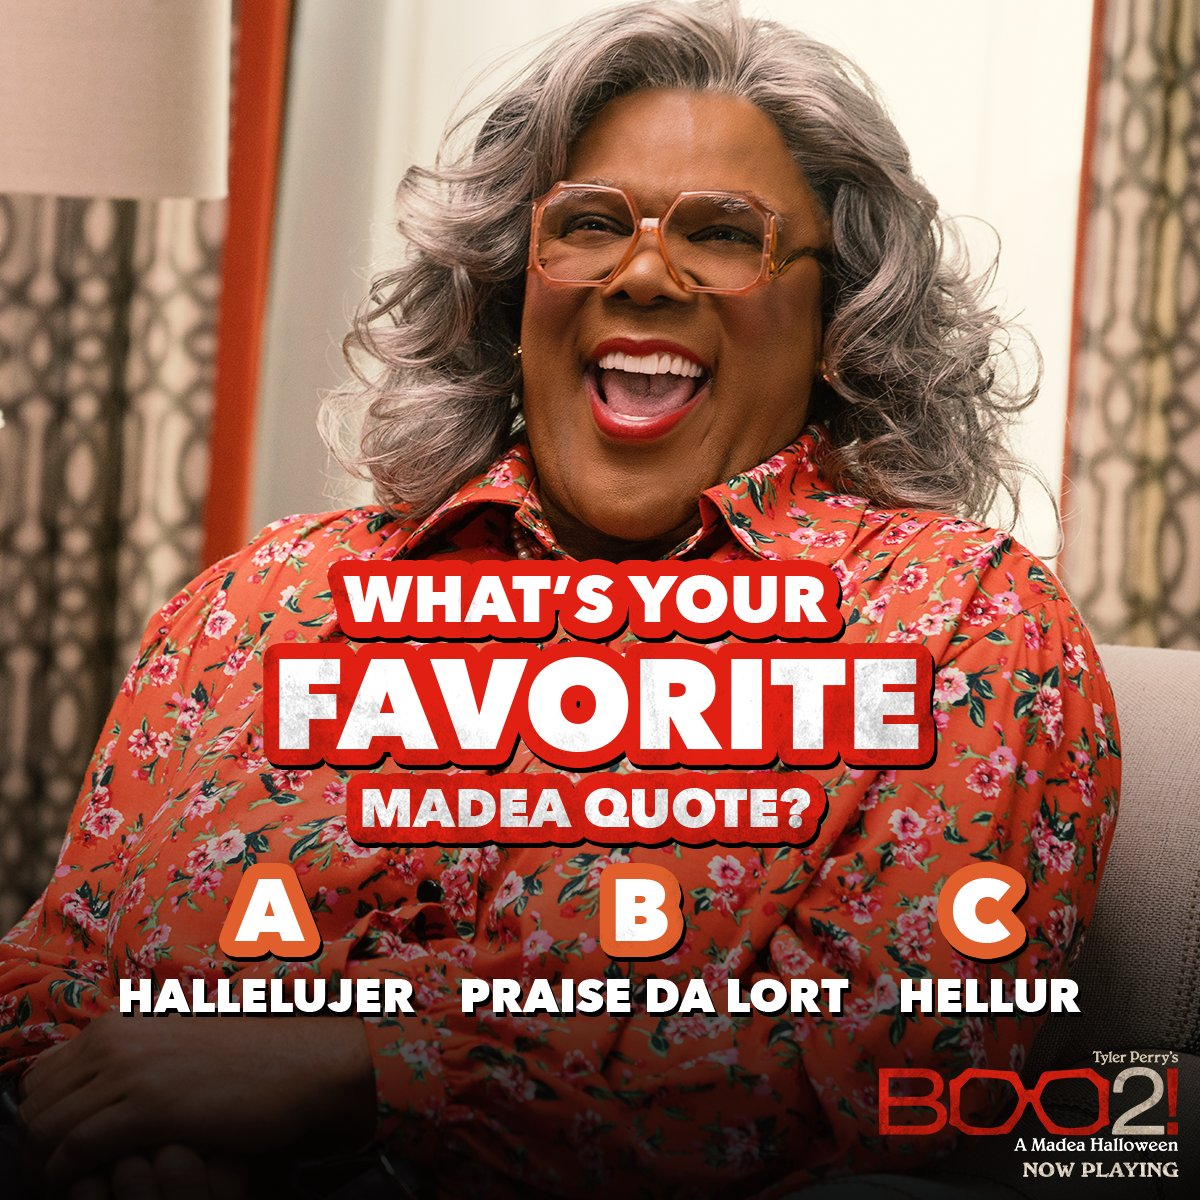 55 rows· cast (in credits order) complete, awaiting verification. Madea Halloween Easysiteoasis